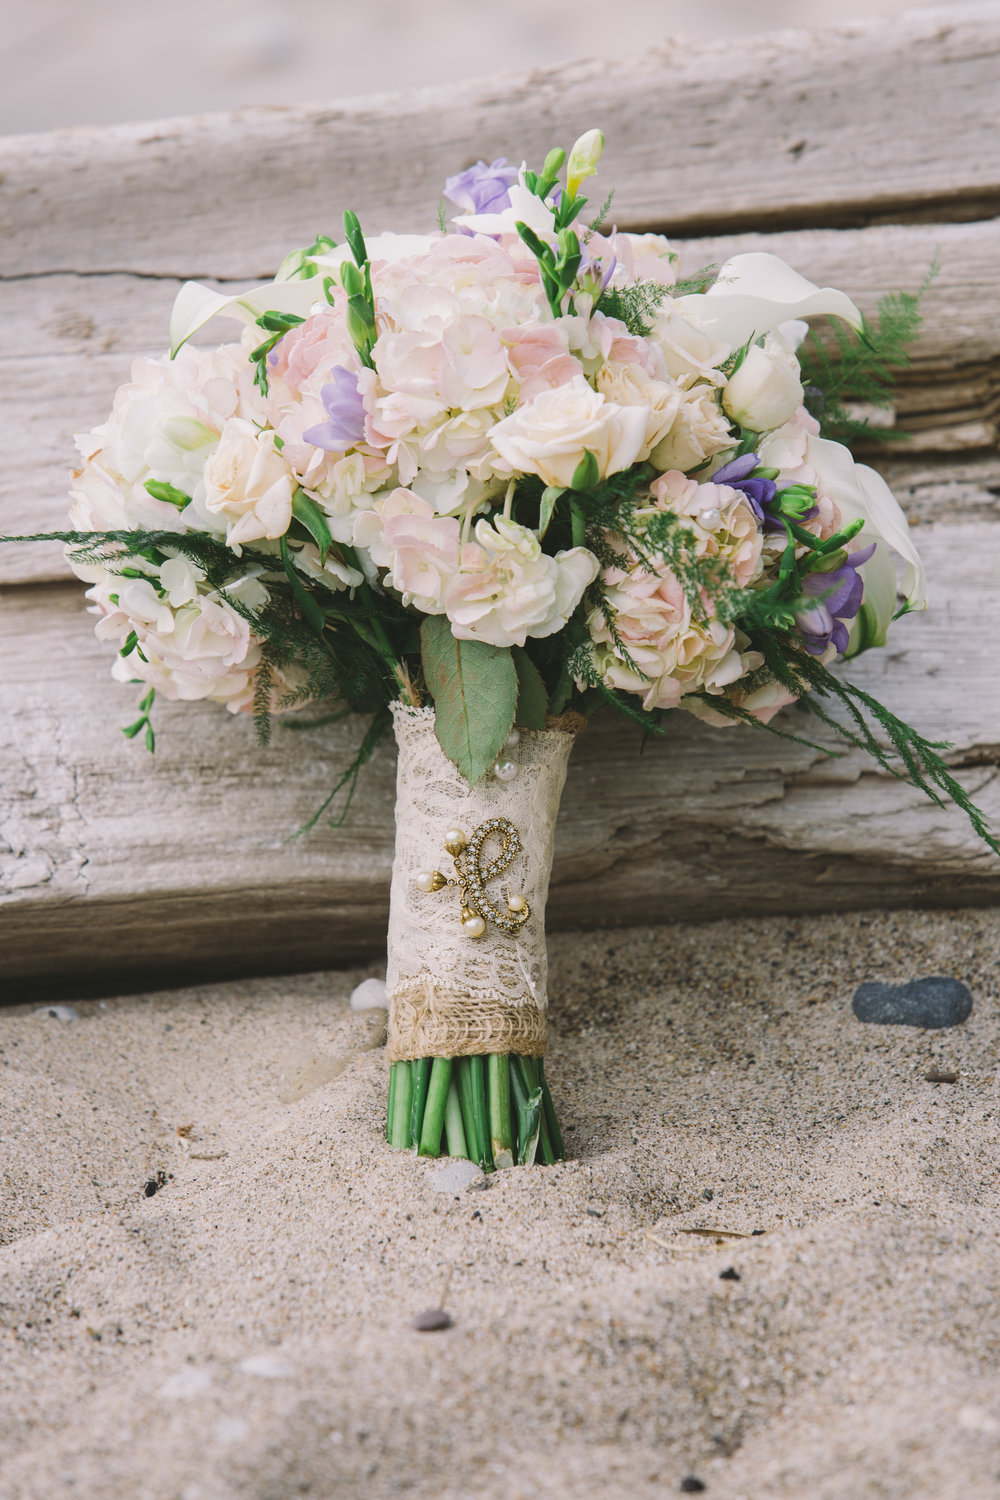 Wedding bouquet of flowers leaning on beach driftwood